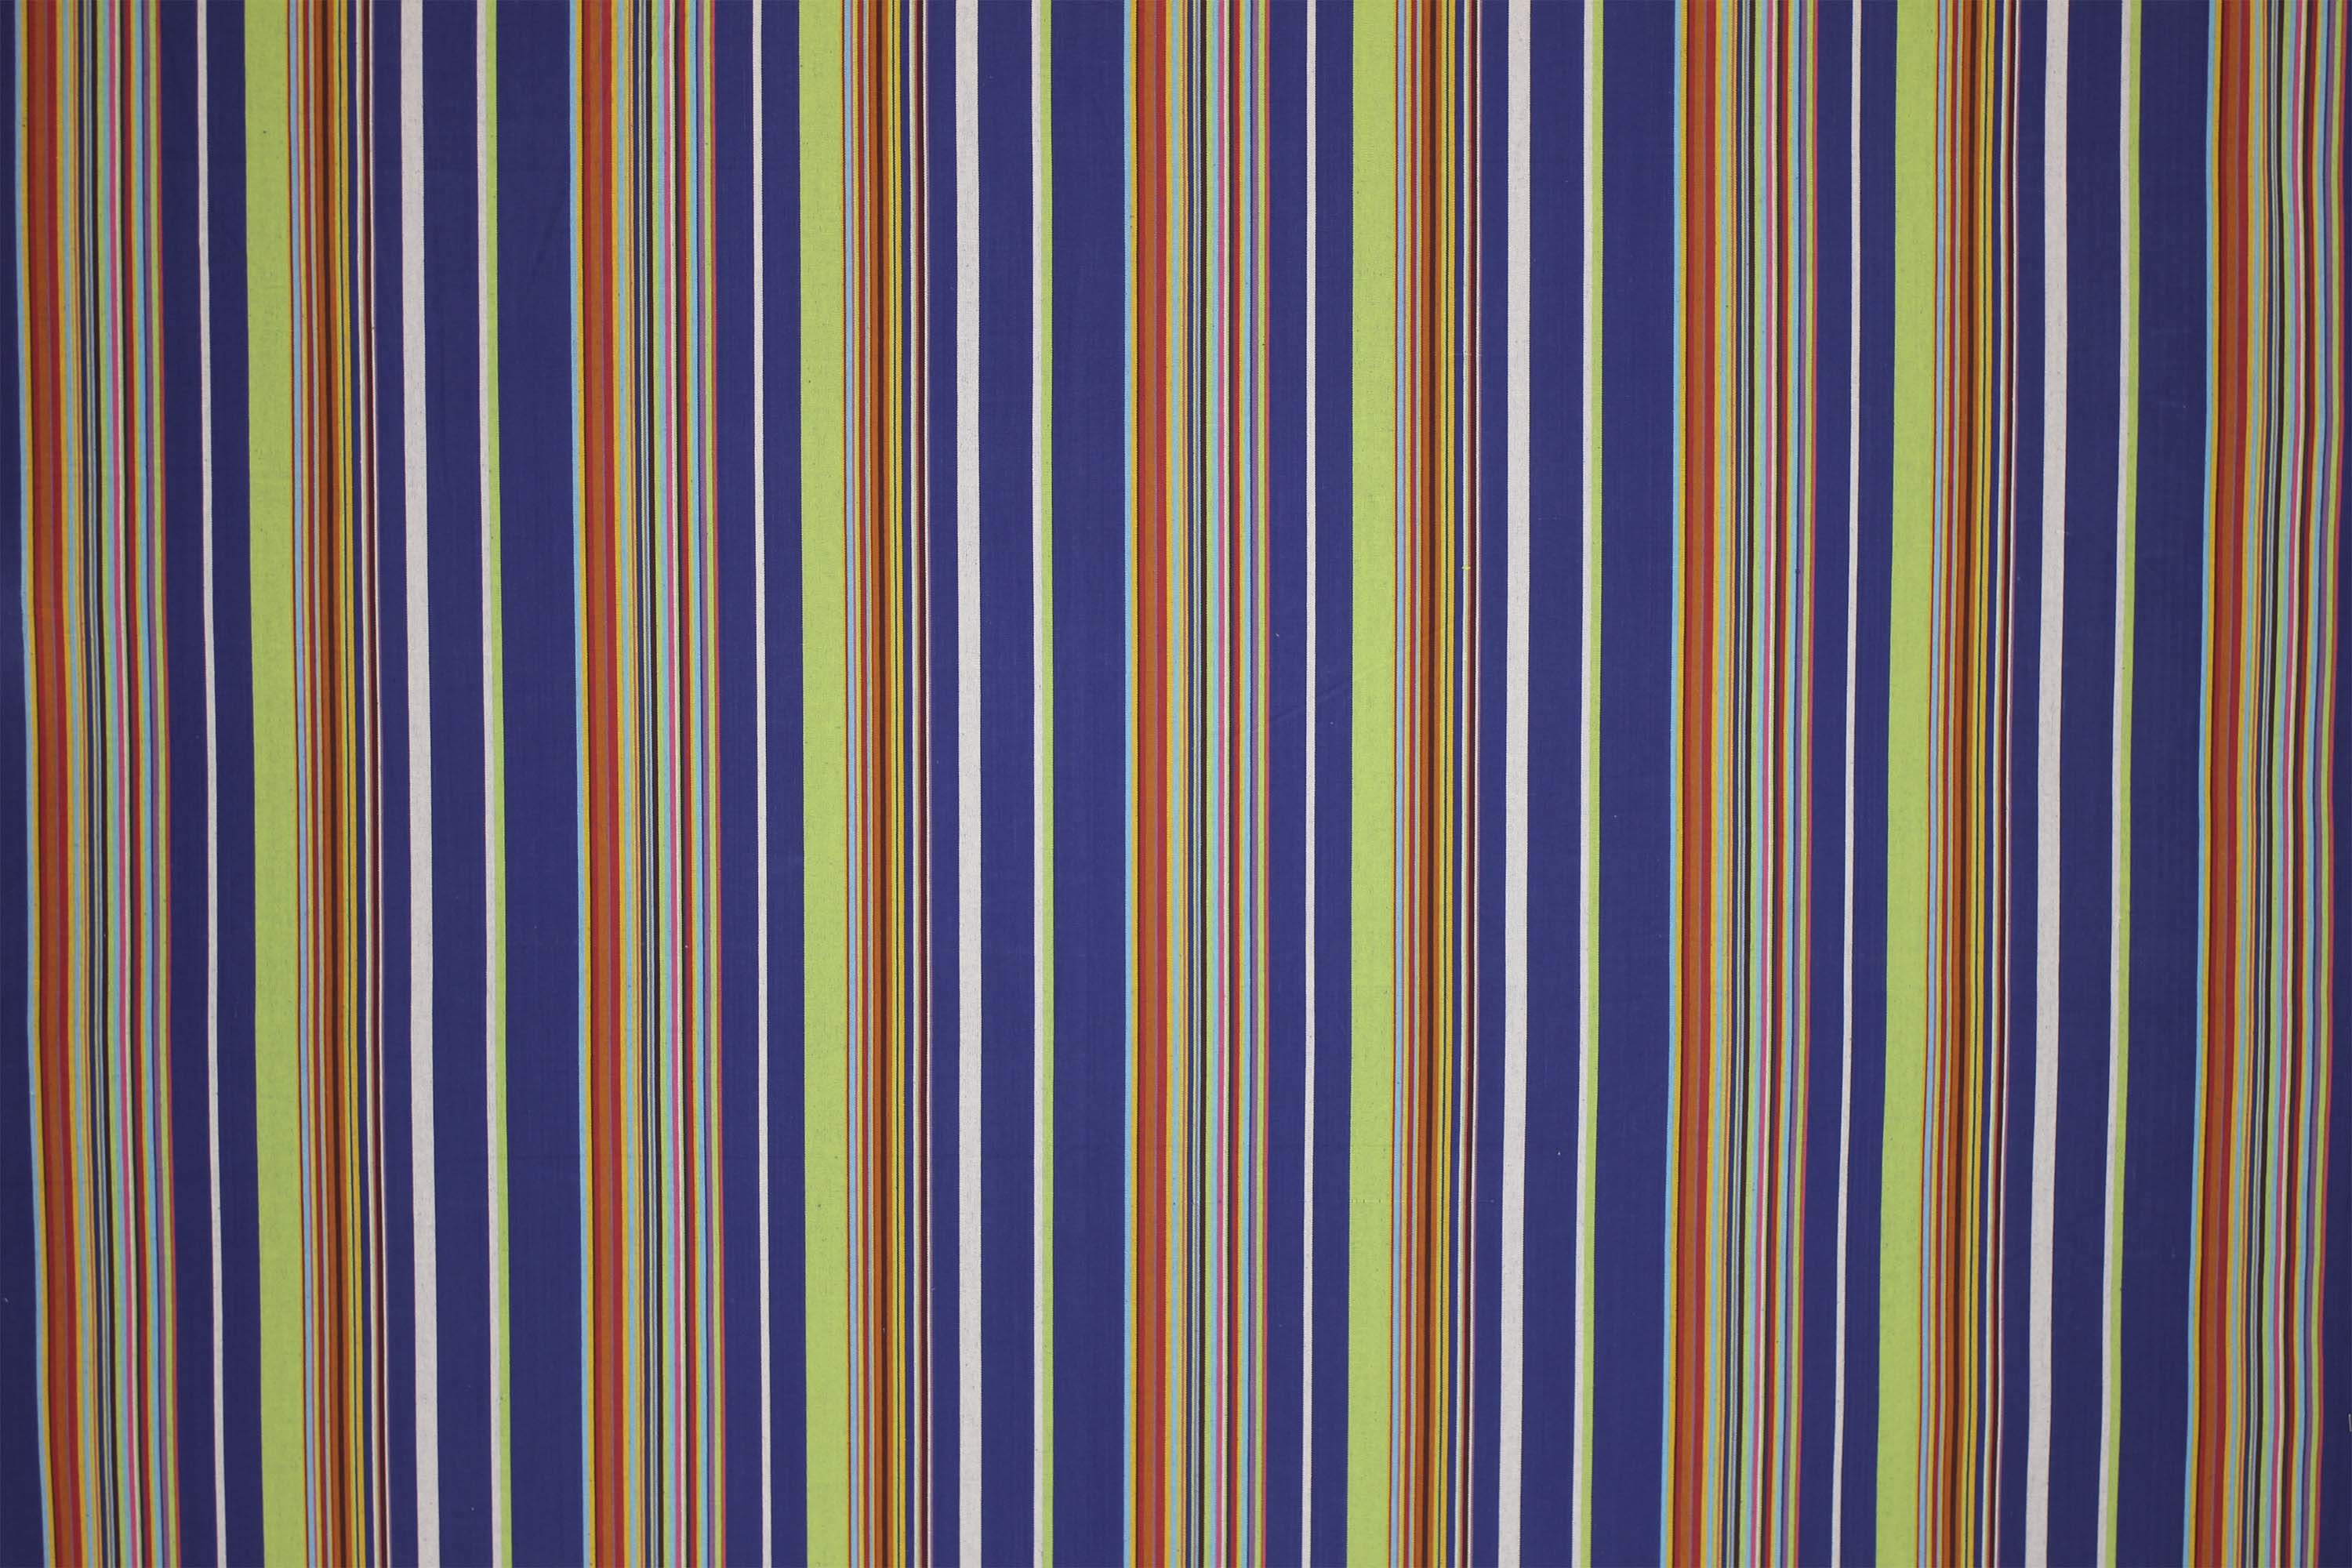 Royal Blue Striped Fabrics | Stripe Cotton Fabrics | Striped Curtain Fabrics | Upholstery Fabrics  Rowing Stripes